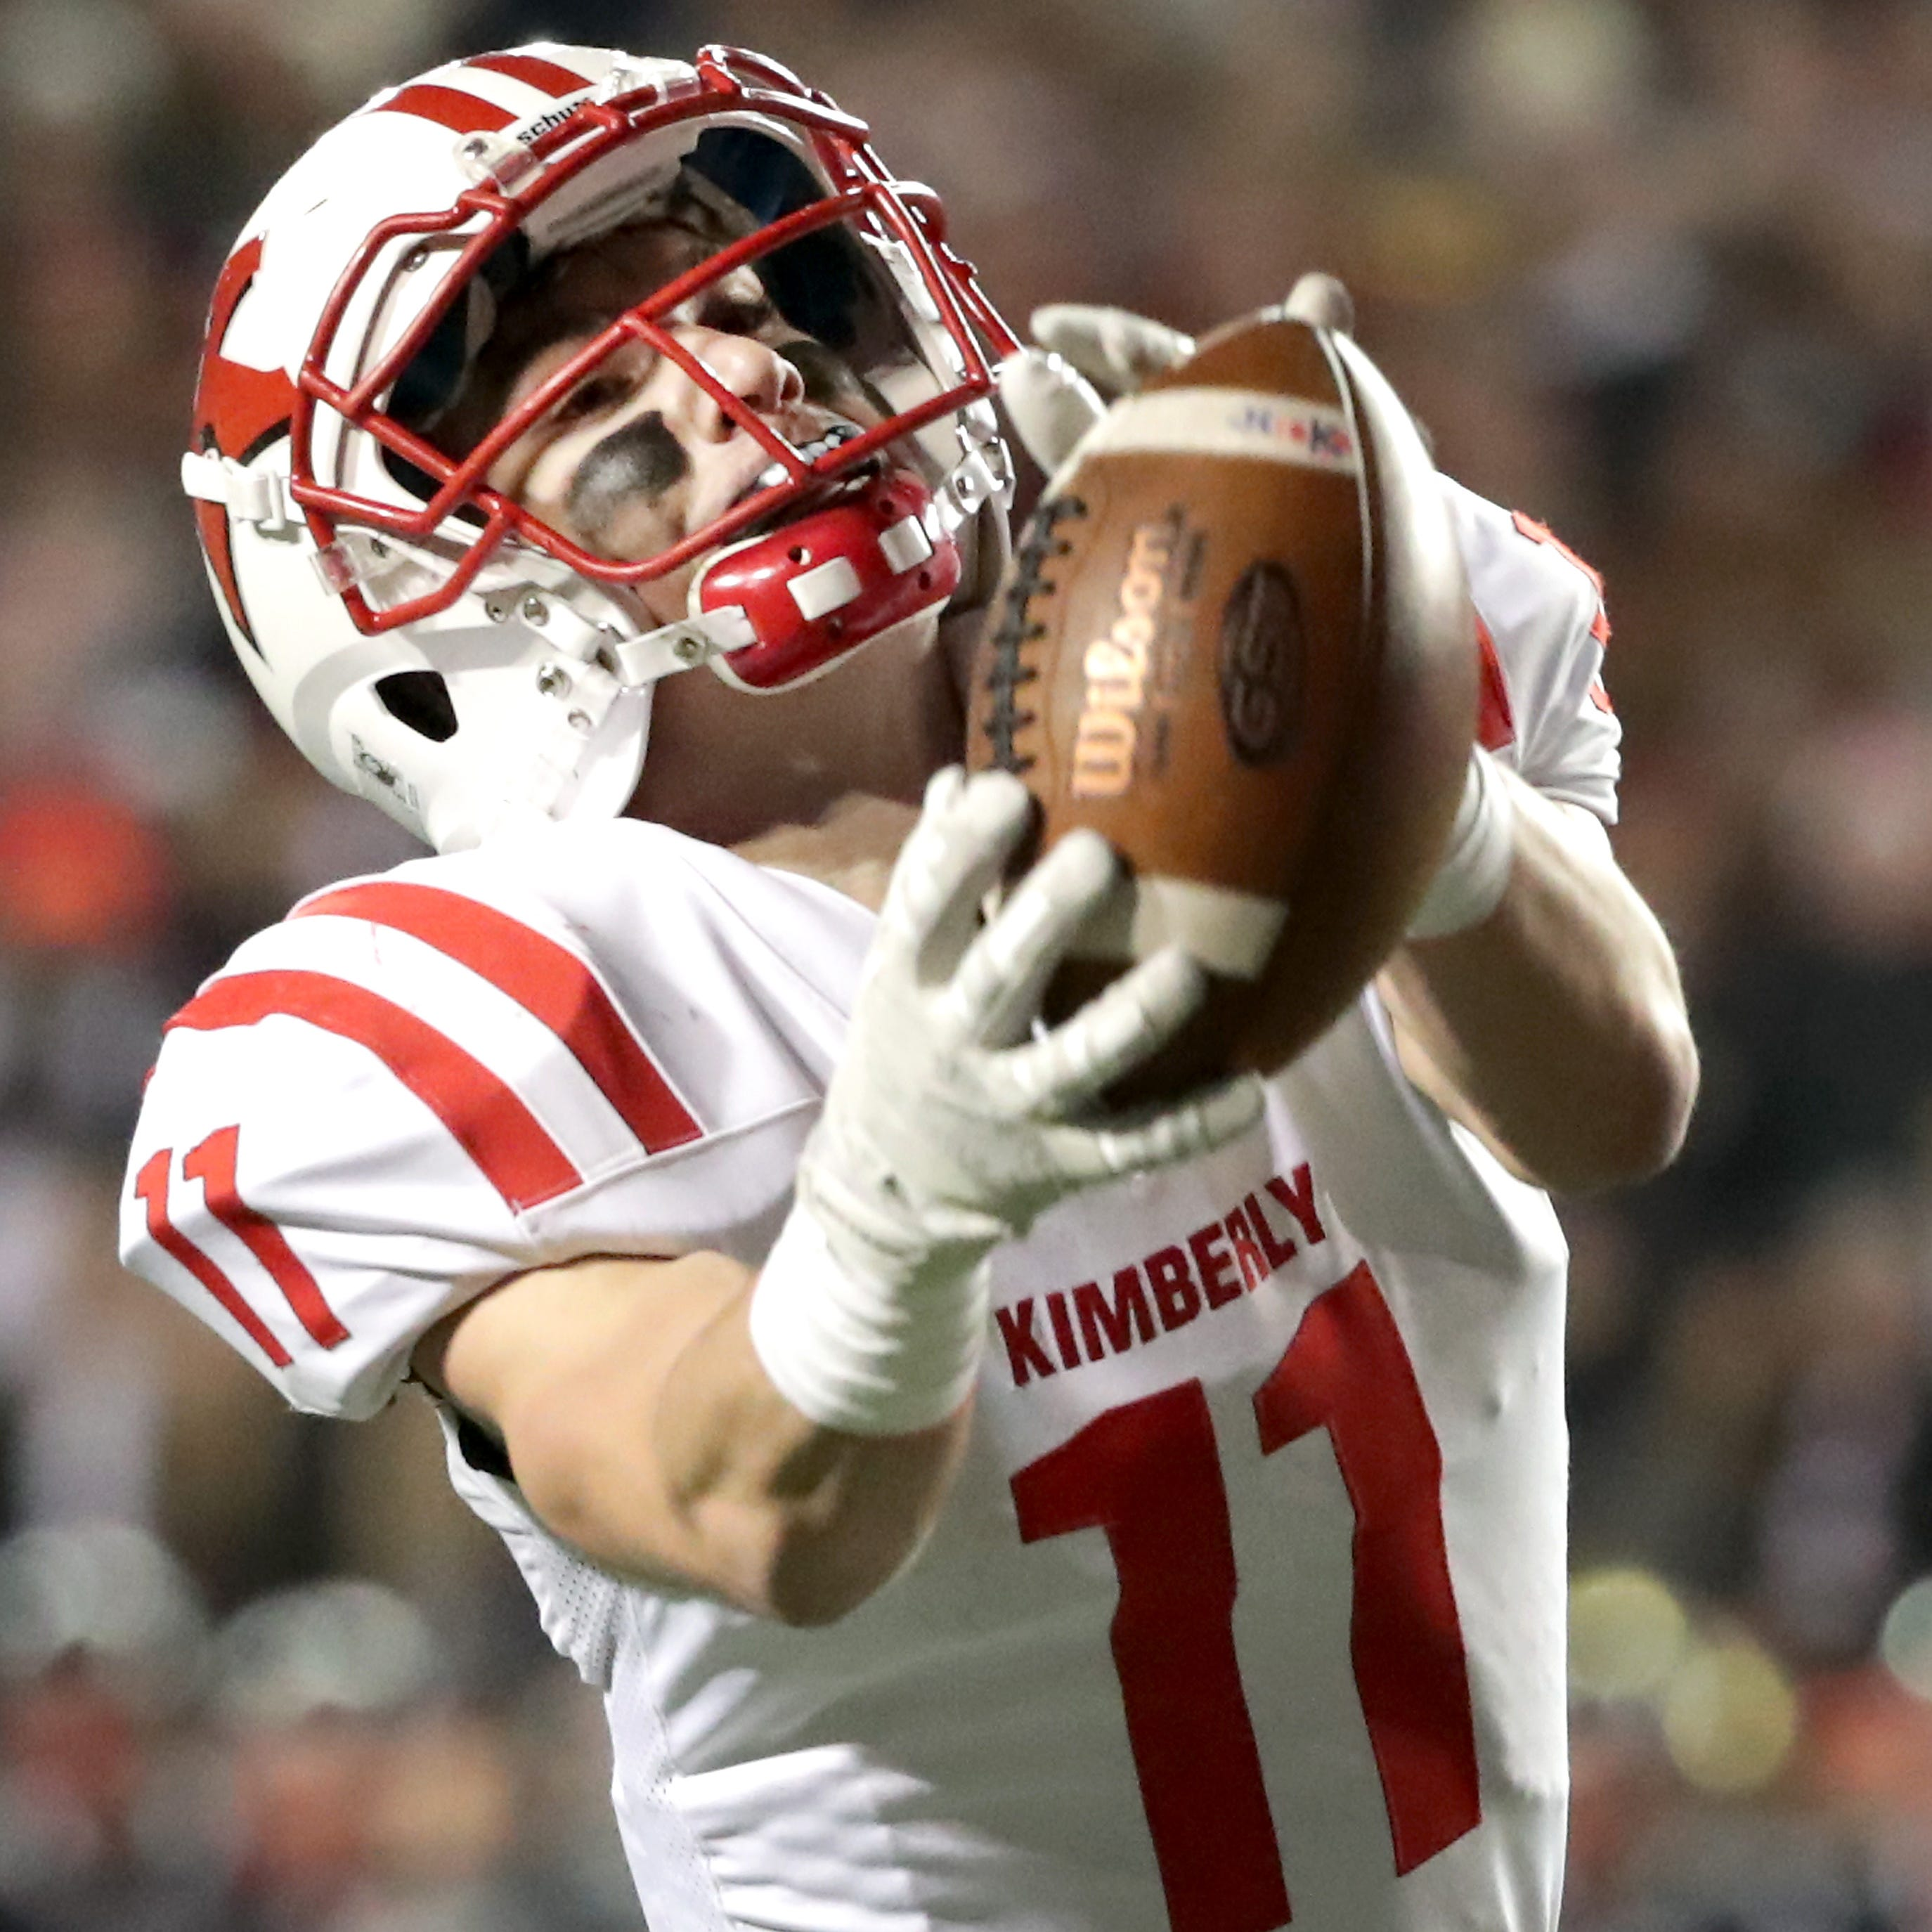 WIAA state football: Kimberly's title run snapped in Division 1 loss to Muskego